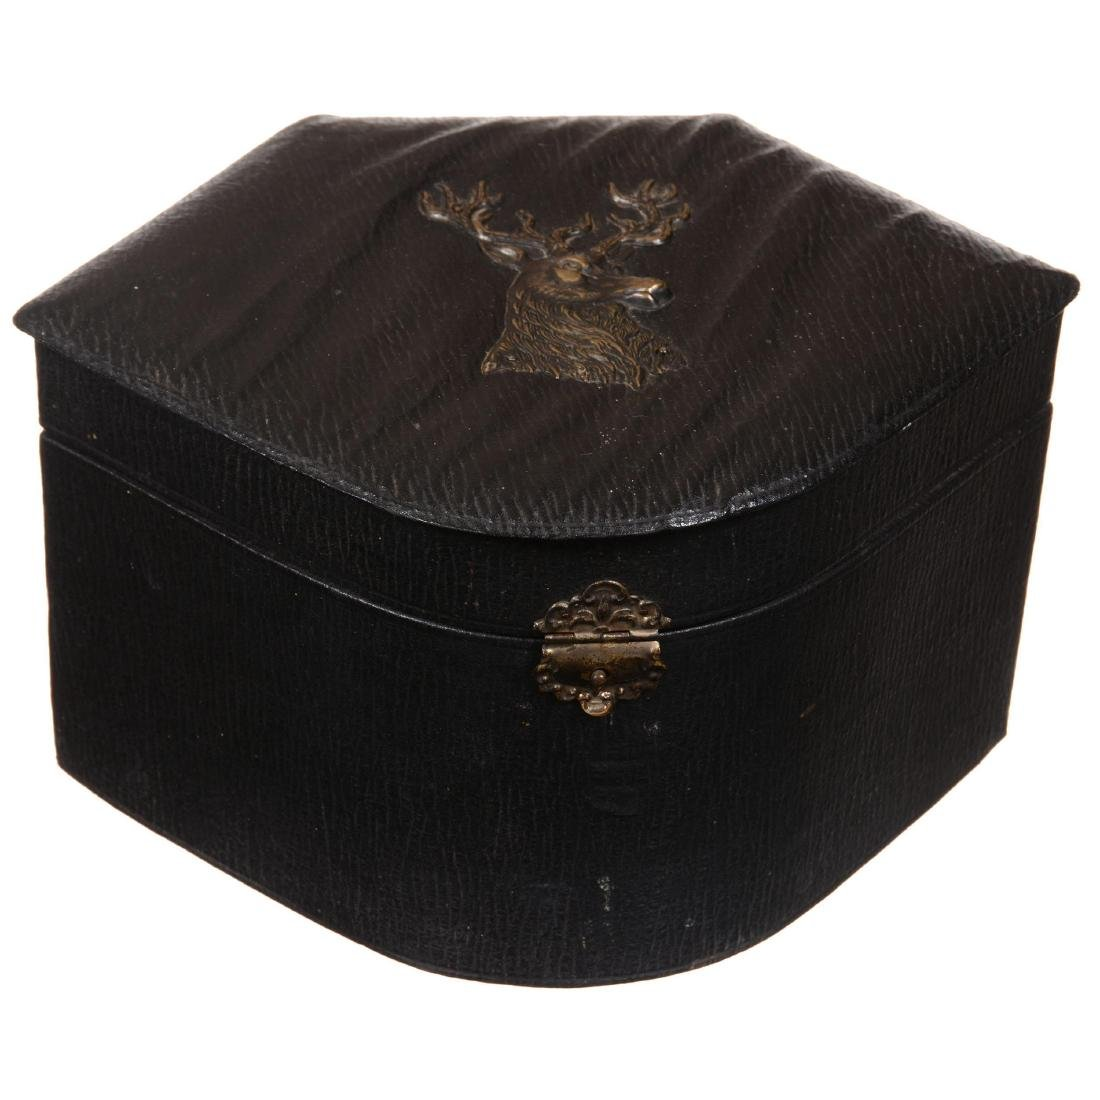 Victorian Collars and Cuffs Box